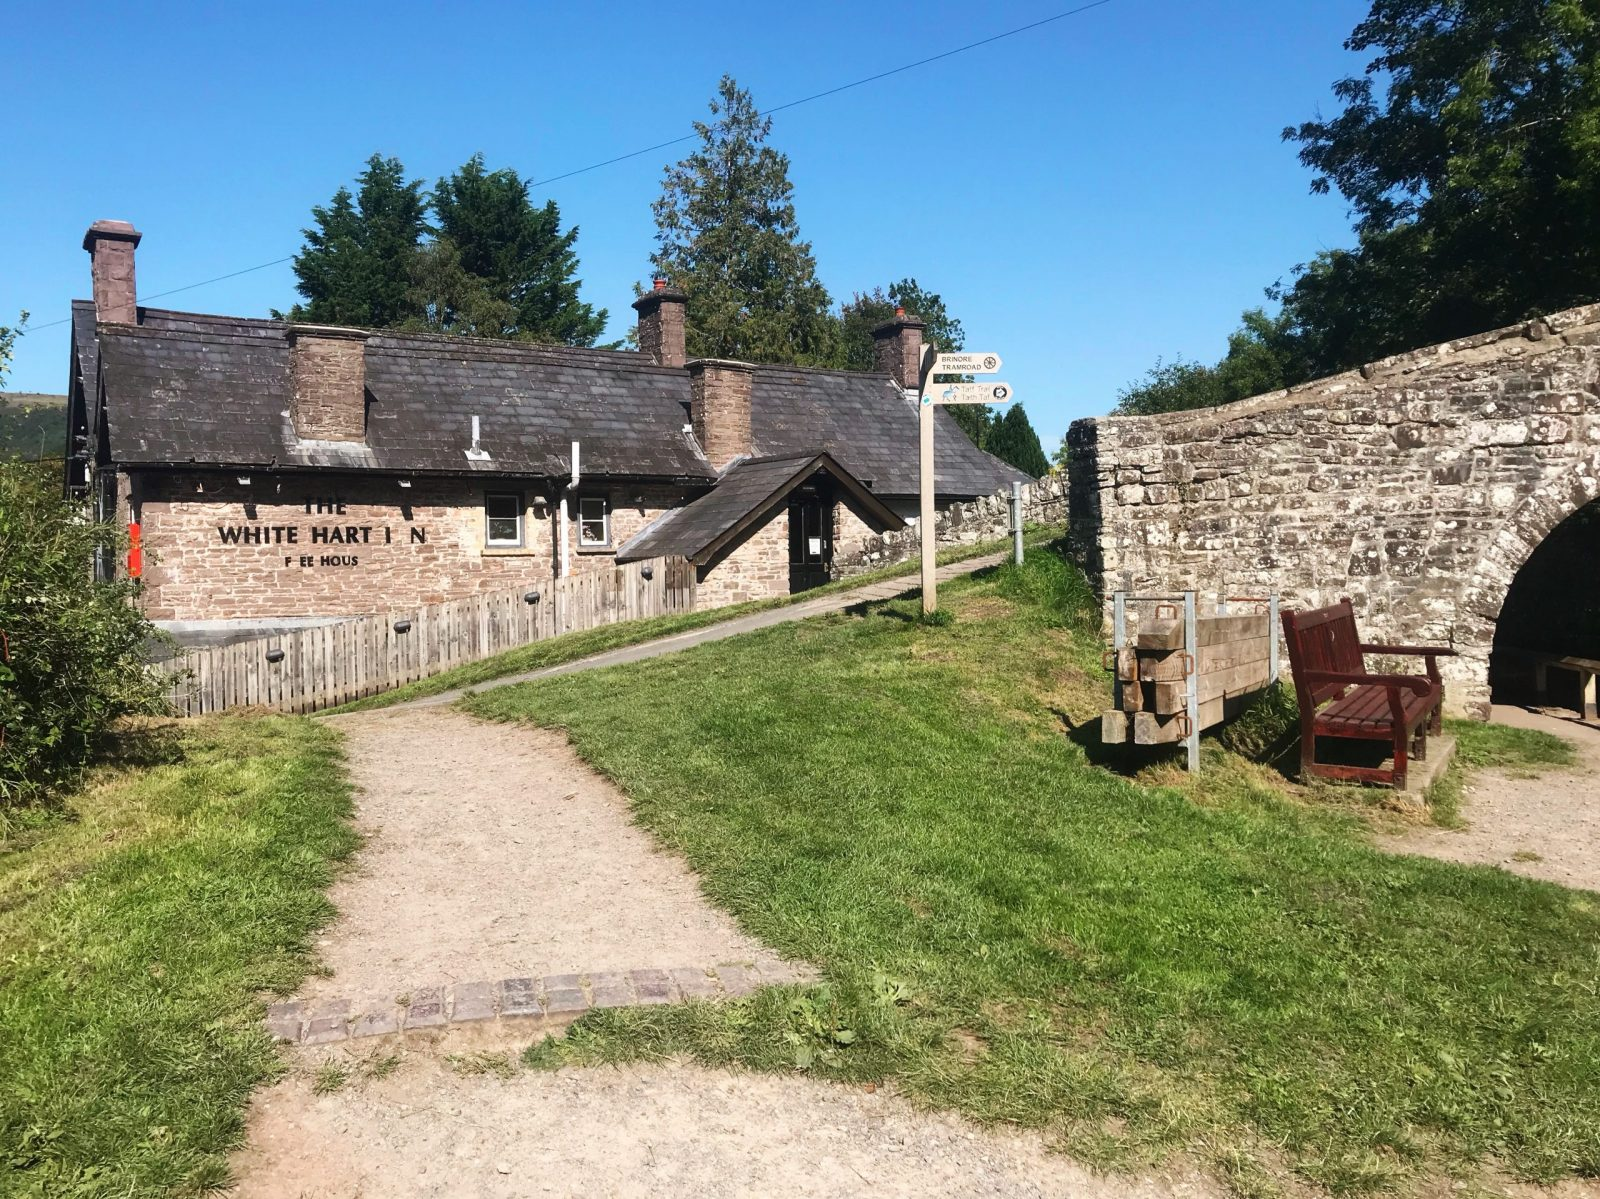 Talybont-on-Usk and The White Hart Inn, Monmouthshire and Brecon Canal